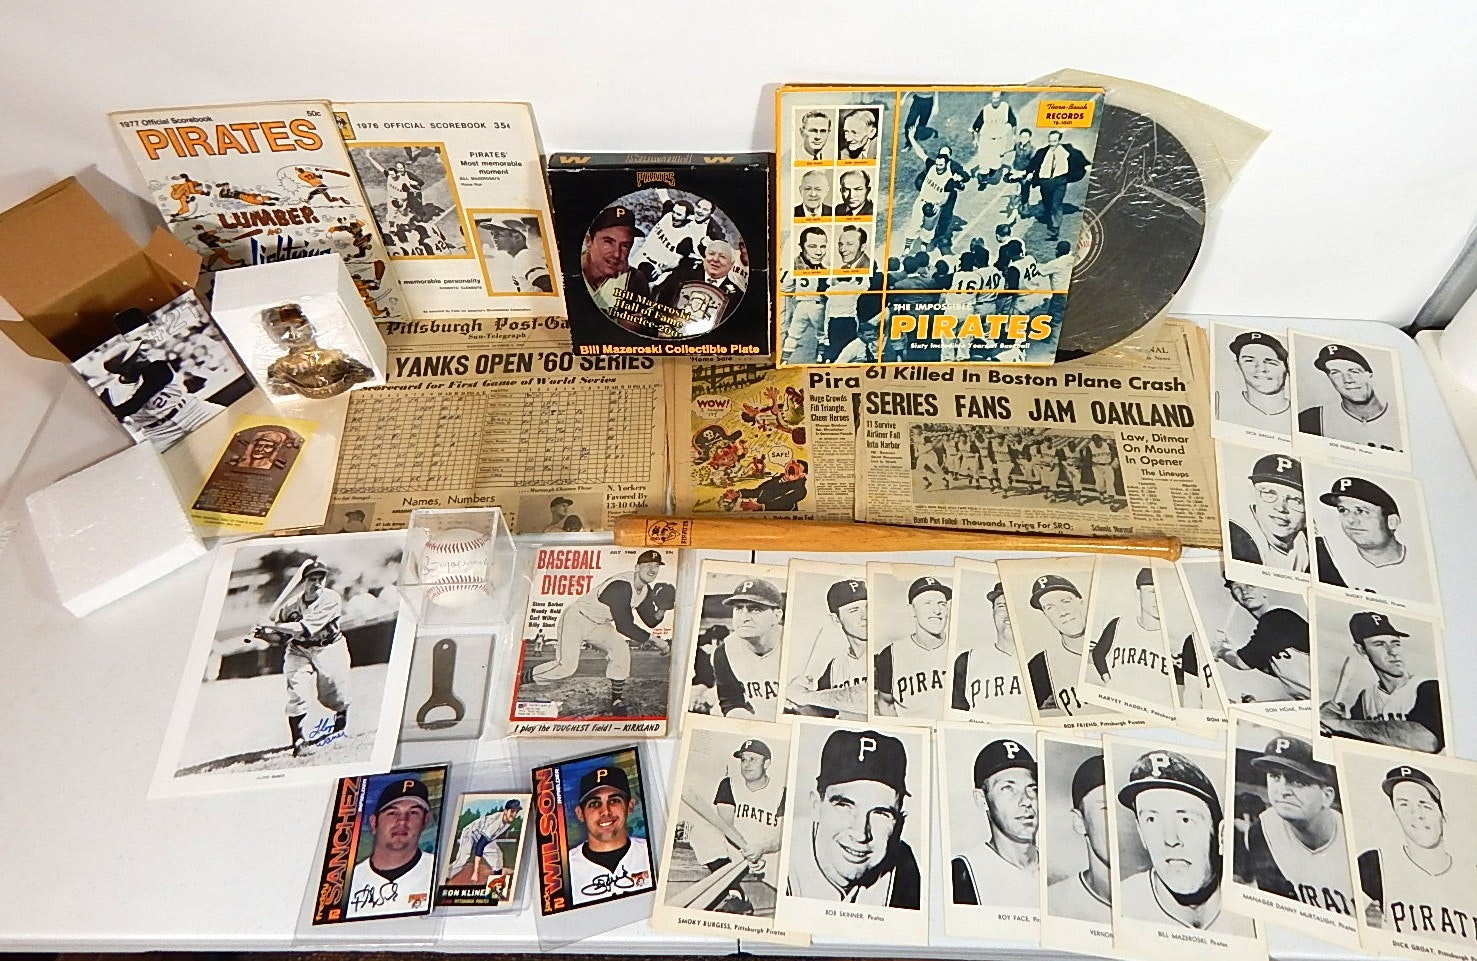 Pittsburgh Pirates Collectibles with Clemente Figure